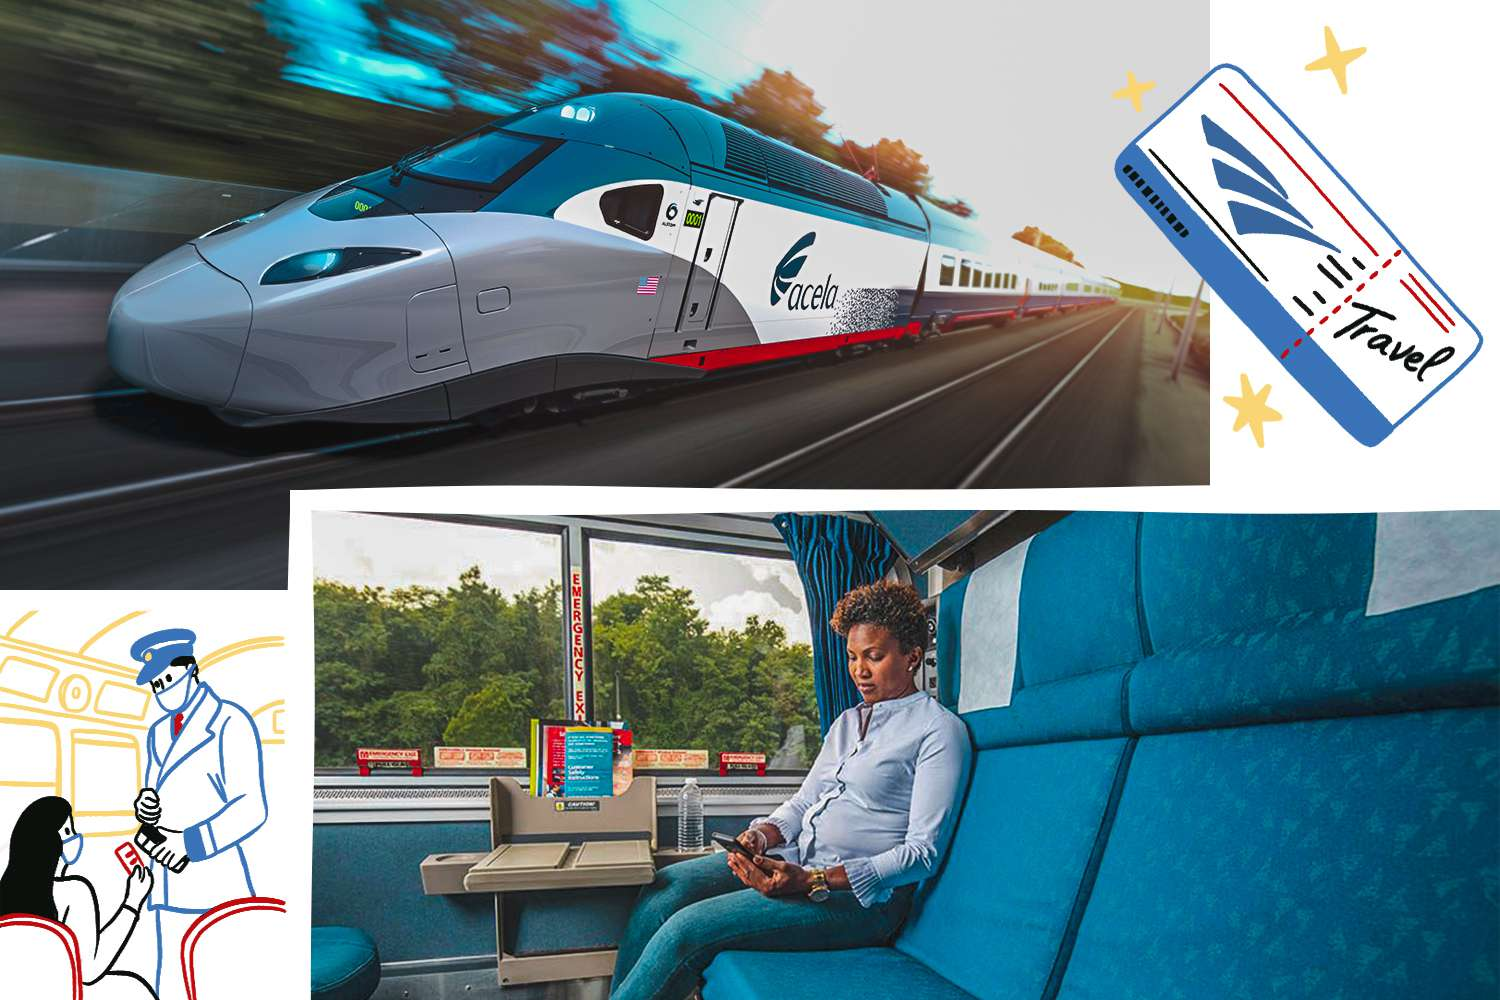 Photos of an Amtrak train and a passenger in side. Illustrations of a ticket and a conductor checking tickets